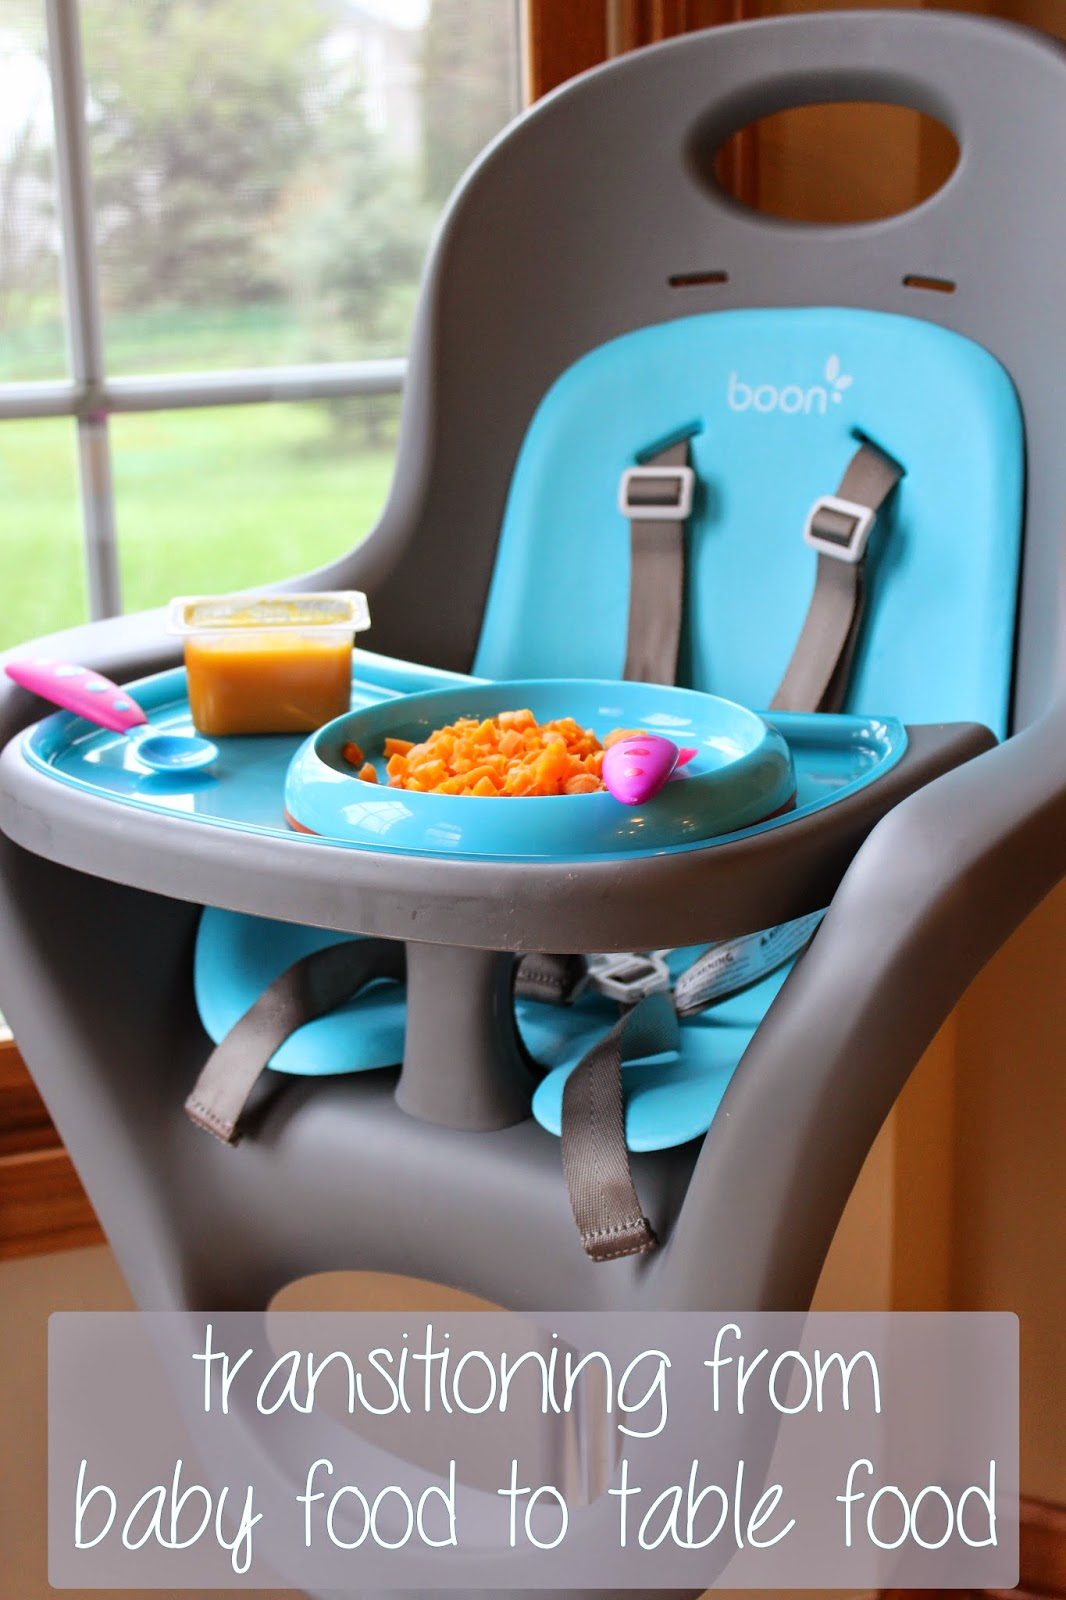 5 Tips for transitioning from baby food to table food #Boon #PLATE #FLAIR #MODWARE #Tableware